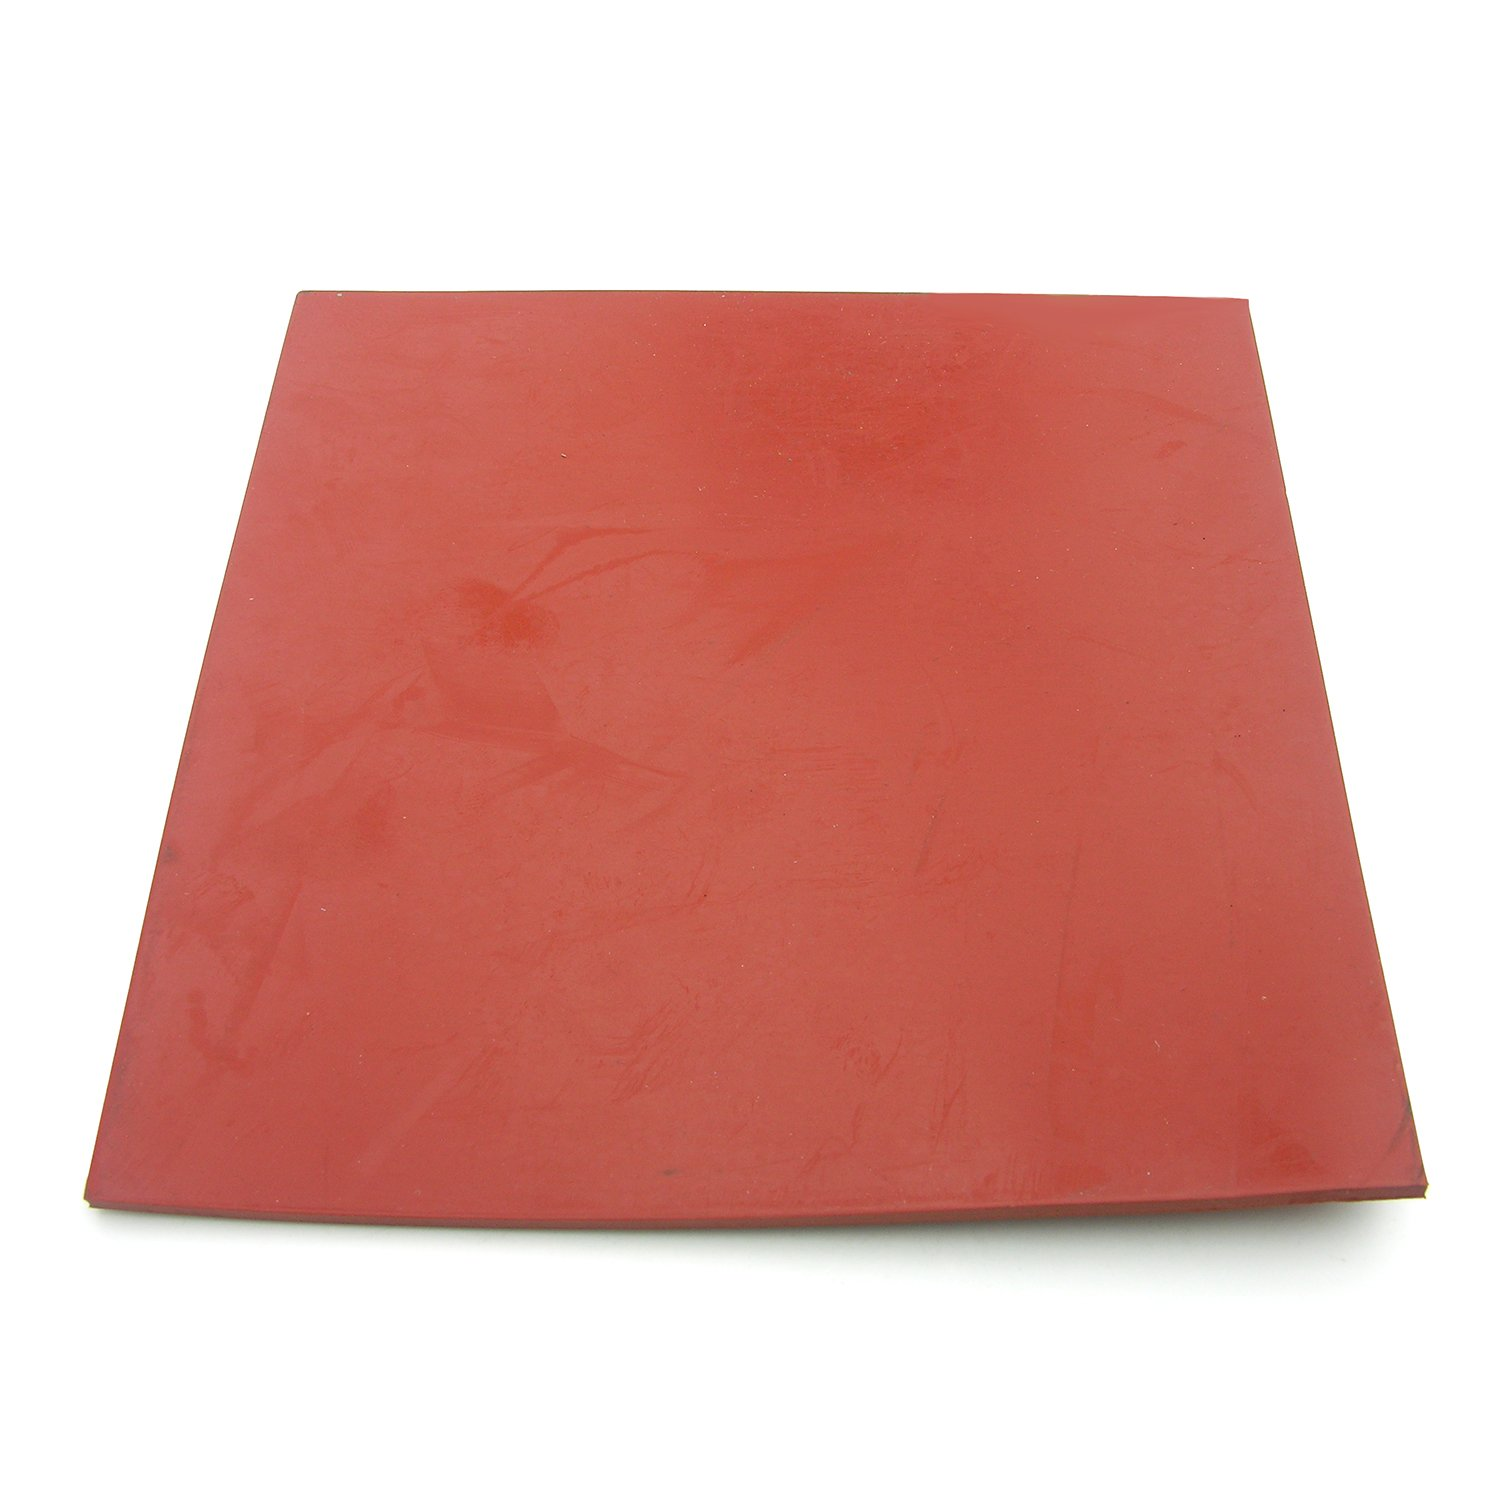 LASCO 02 1050E Rubber Sheet 6 Inches x 6 Inches and 1 8 Inch Thick